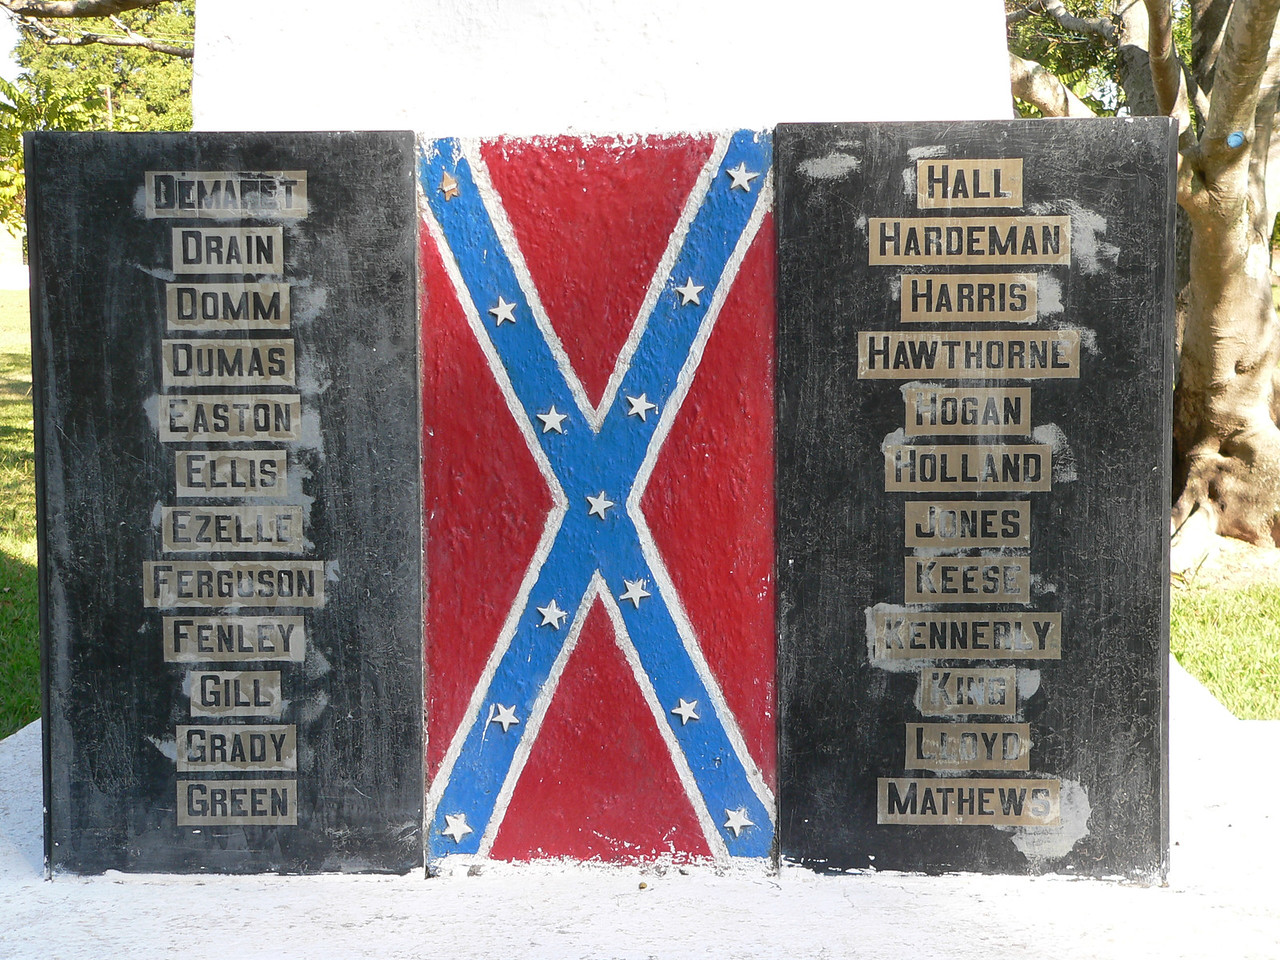 At the base of the white obelisk that stands in the front middle of the ground, are inscribed the names of the first families who emigrated to Brazil after the Civil War.